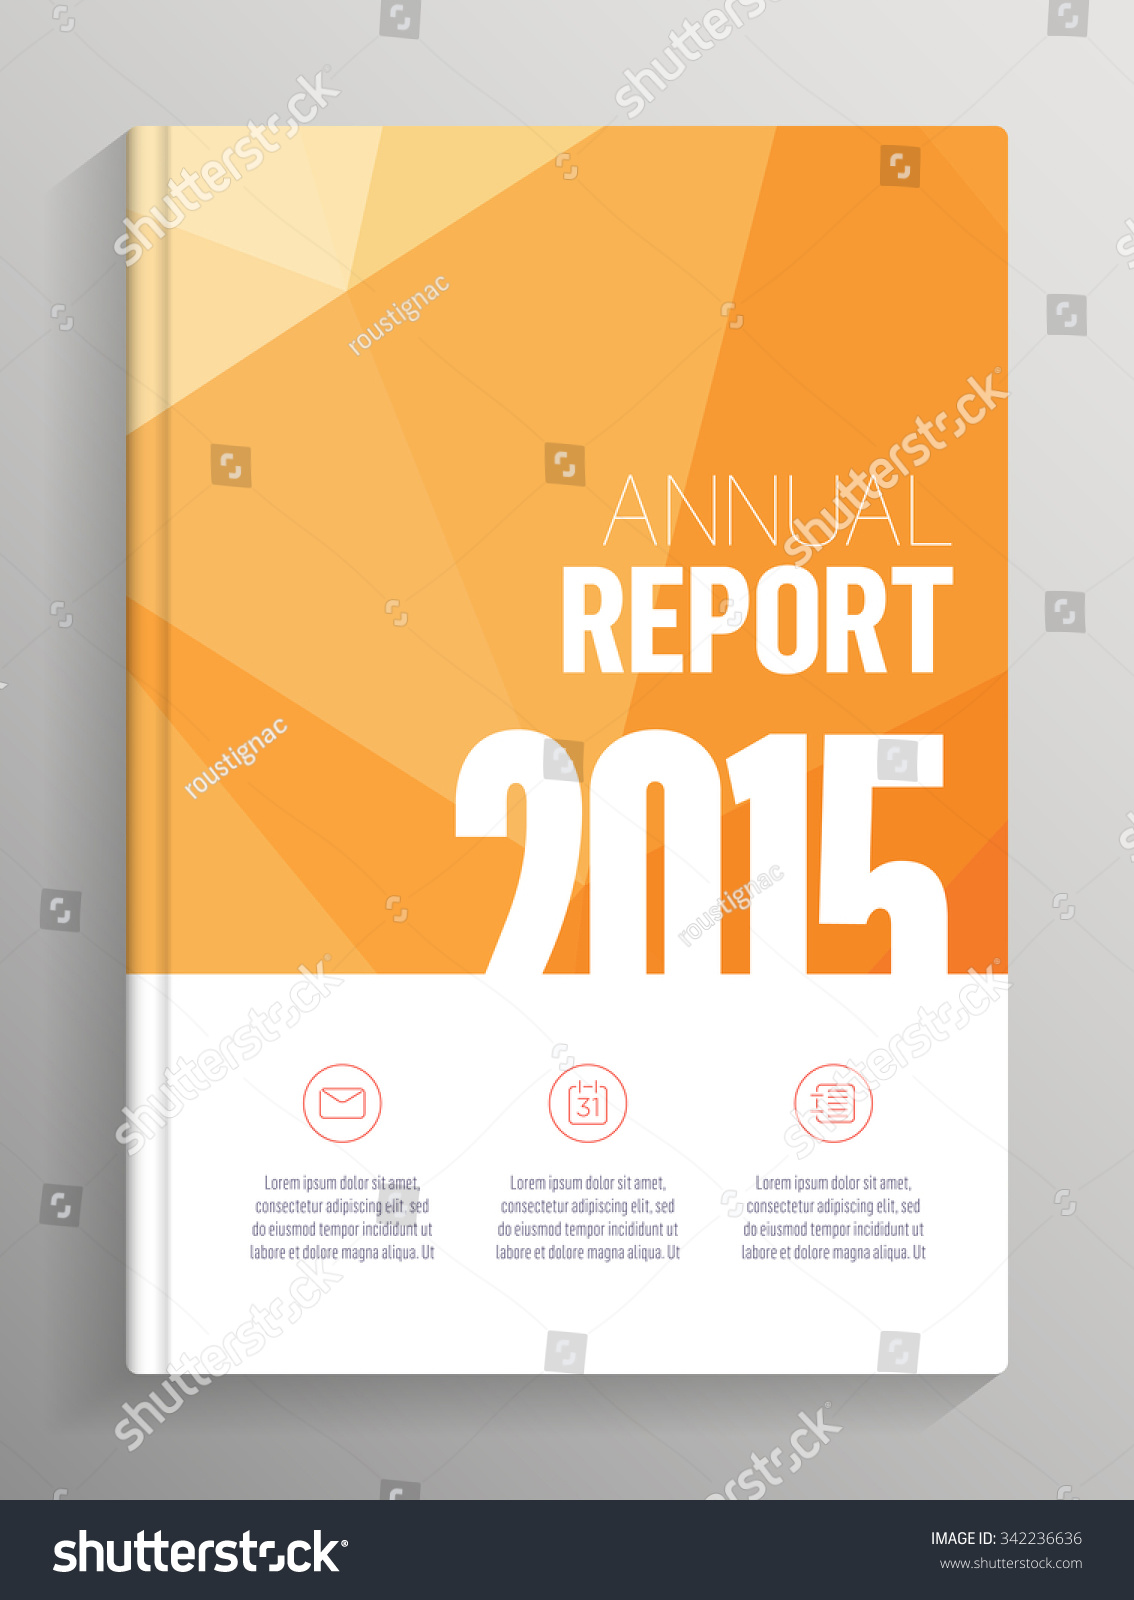 annual report cover low poly stock vektor  annual report 2015 cover low poly cover layout for books brochures flyers